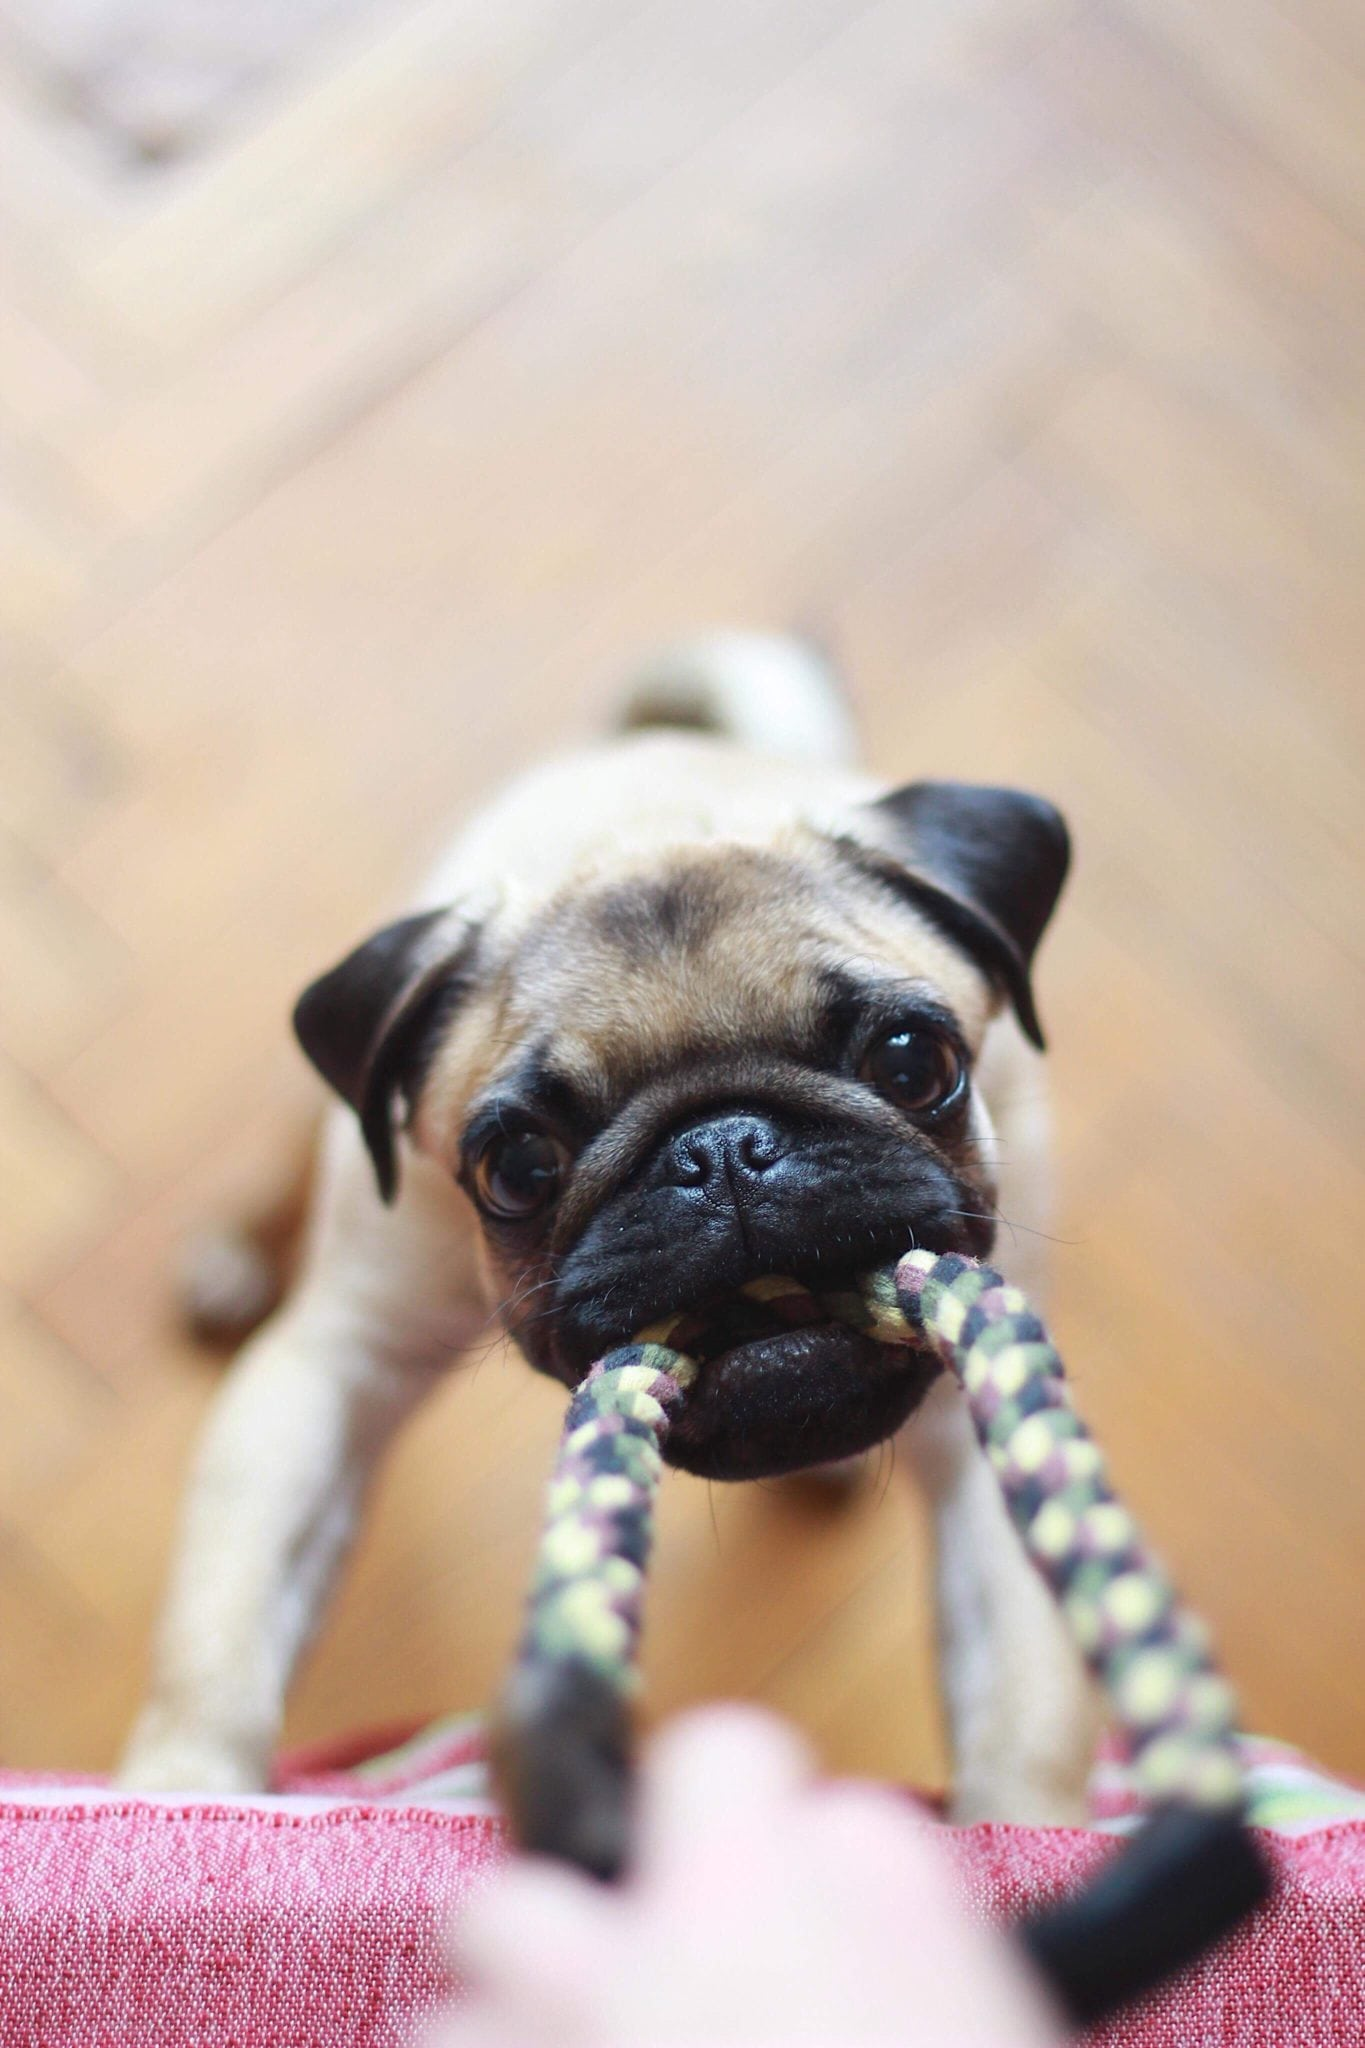 cute dog pulling on rope